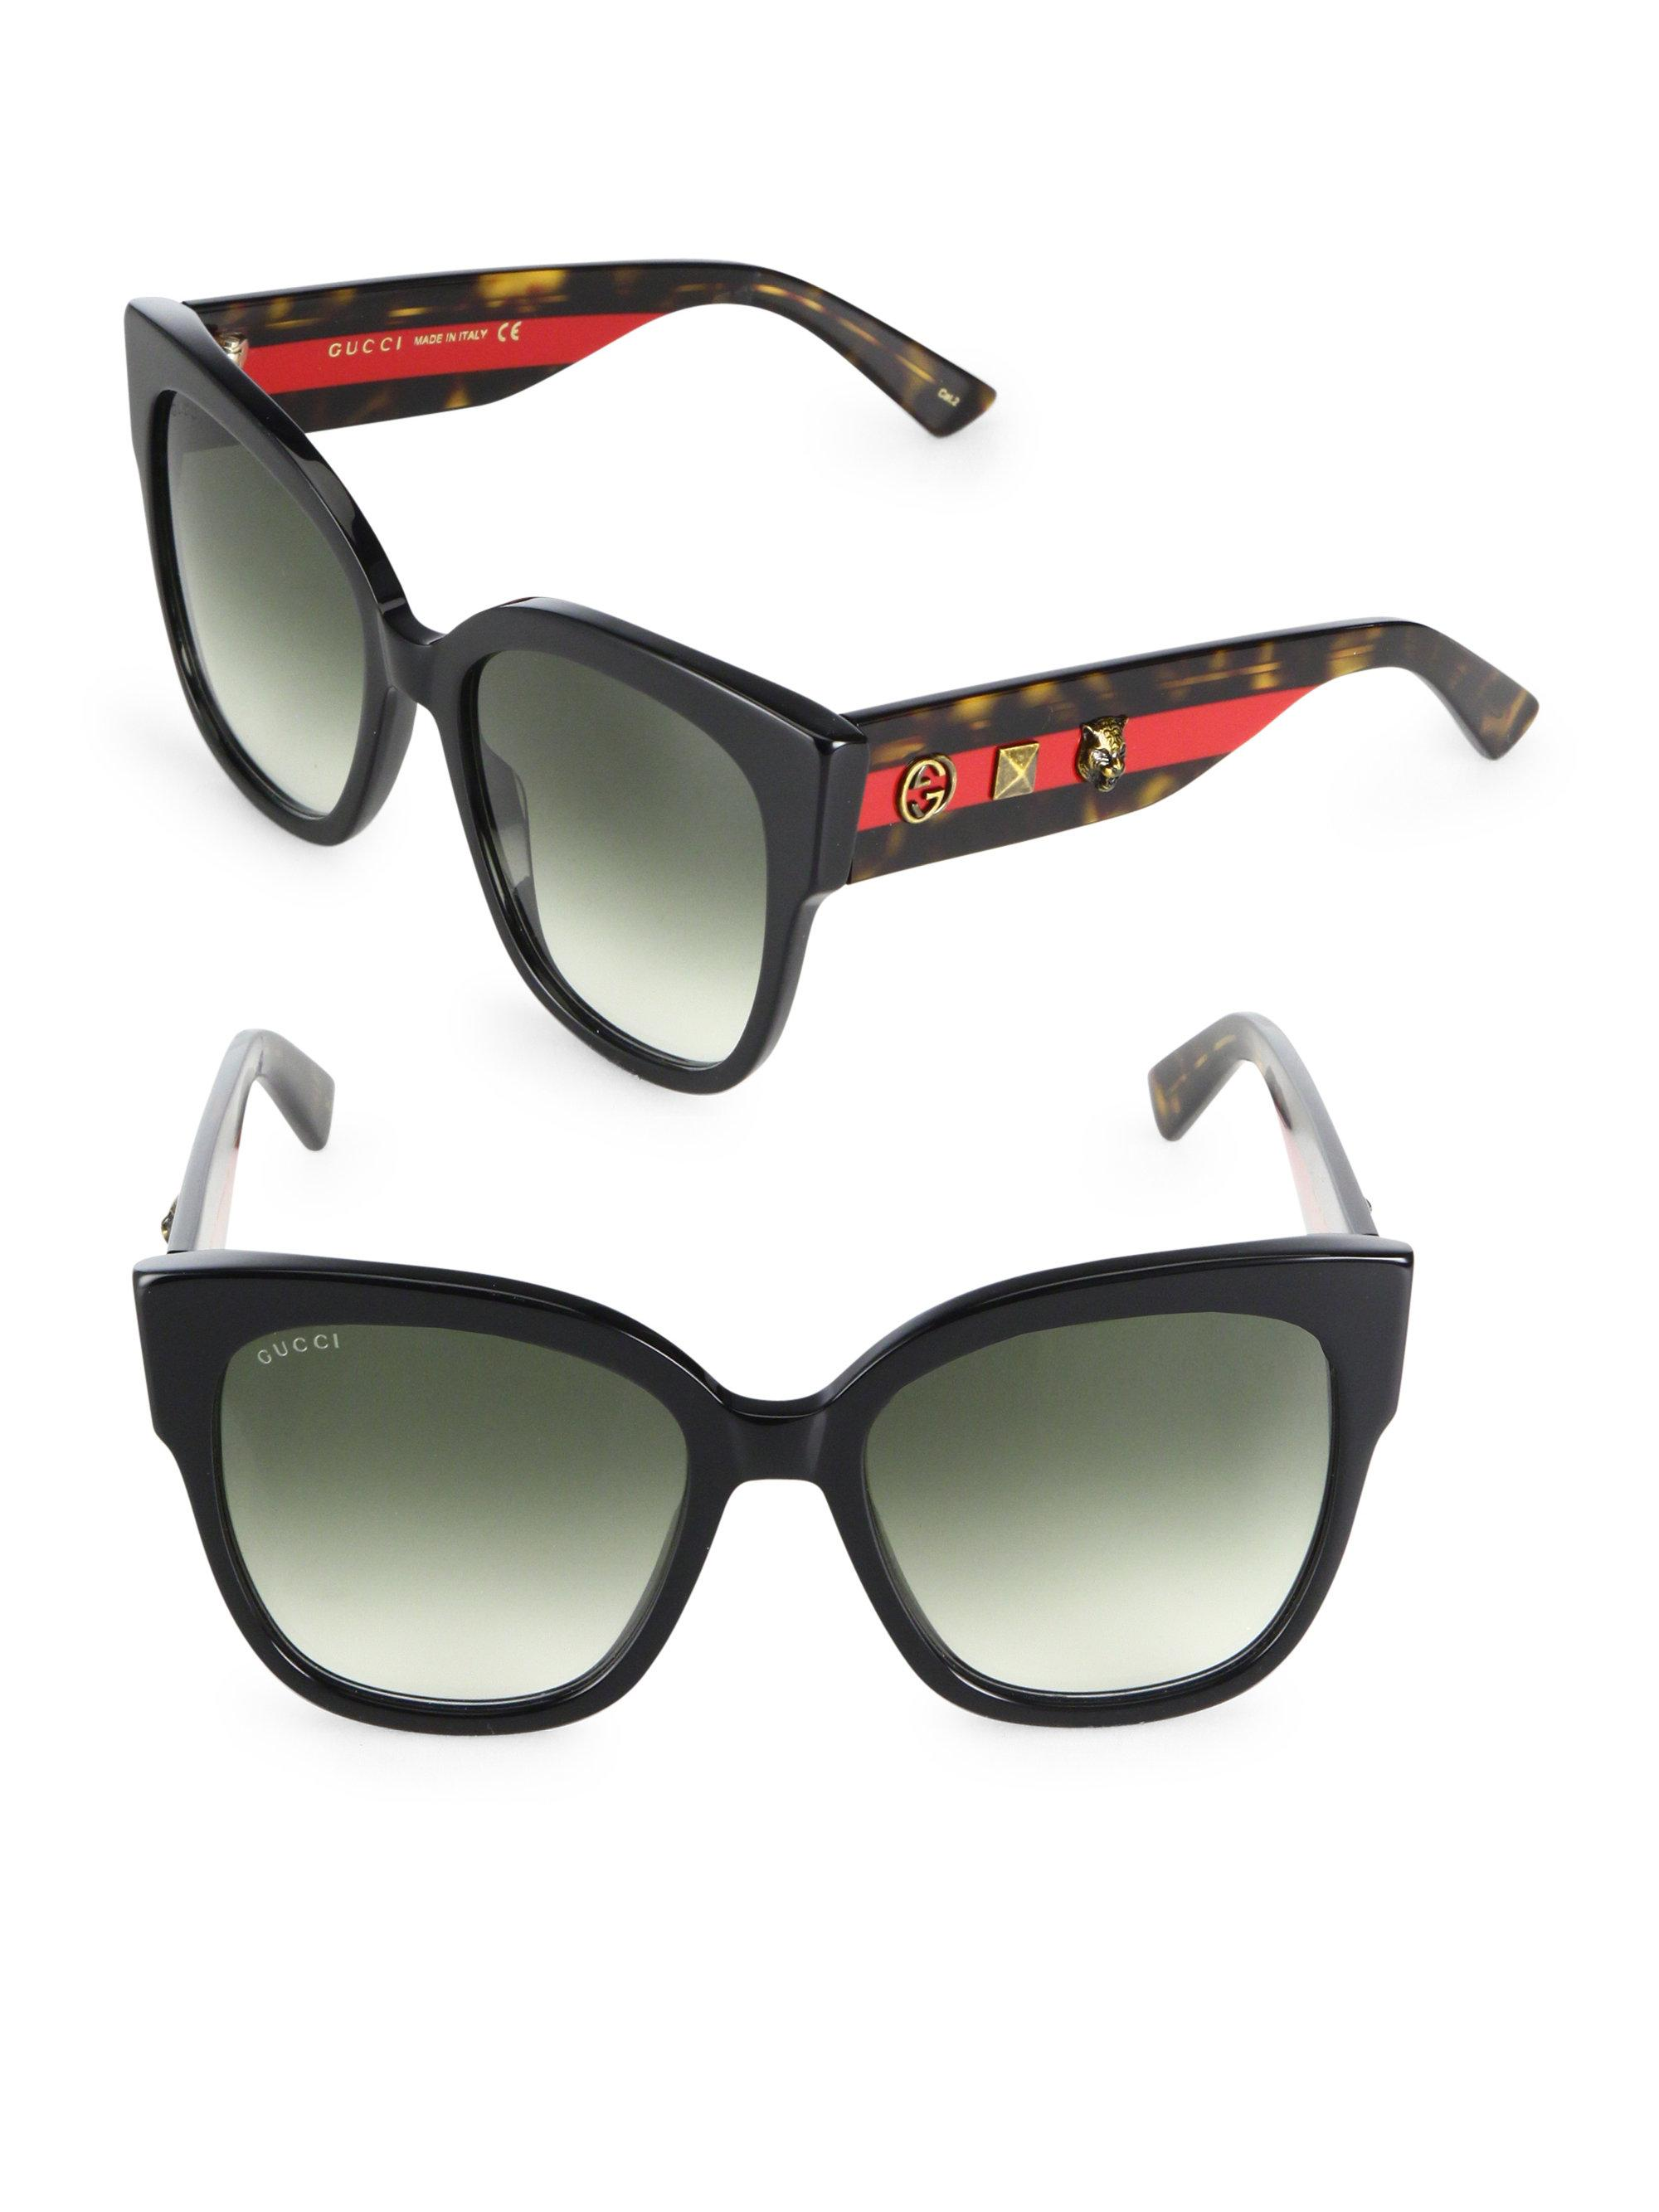 04fd48368ba Lyst - Gucci 55mm Oversized Studded Square Cat Eye Sunglasses in Black